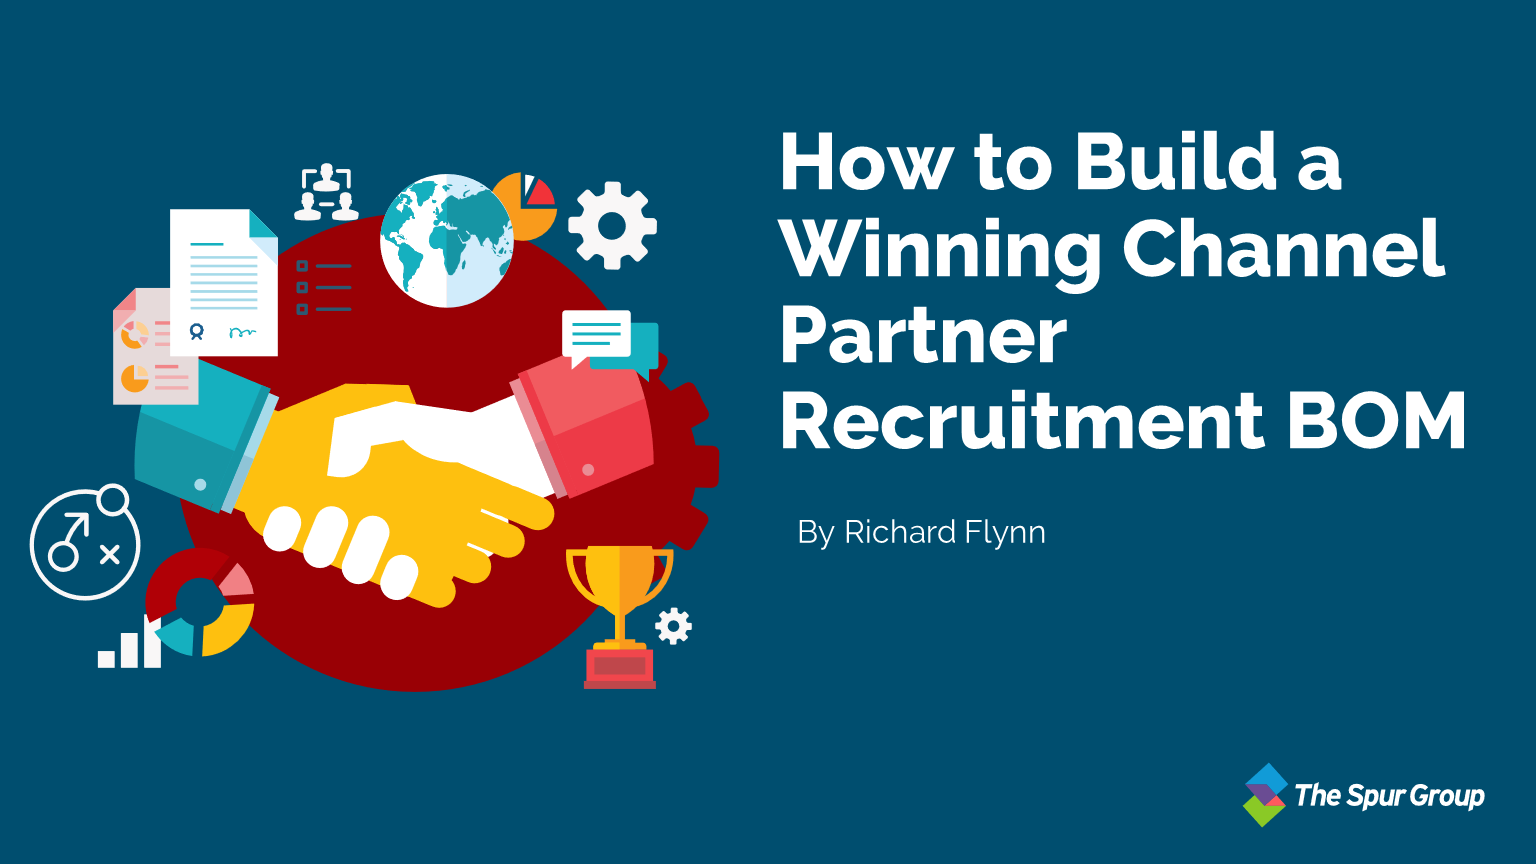 How to build a winning channel partner recruitment BOM Featured Image